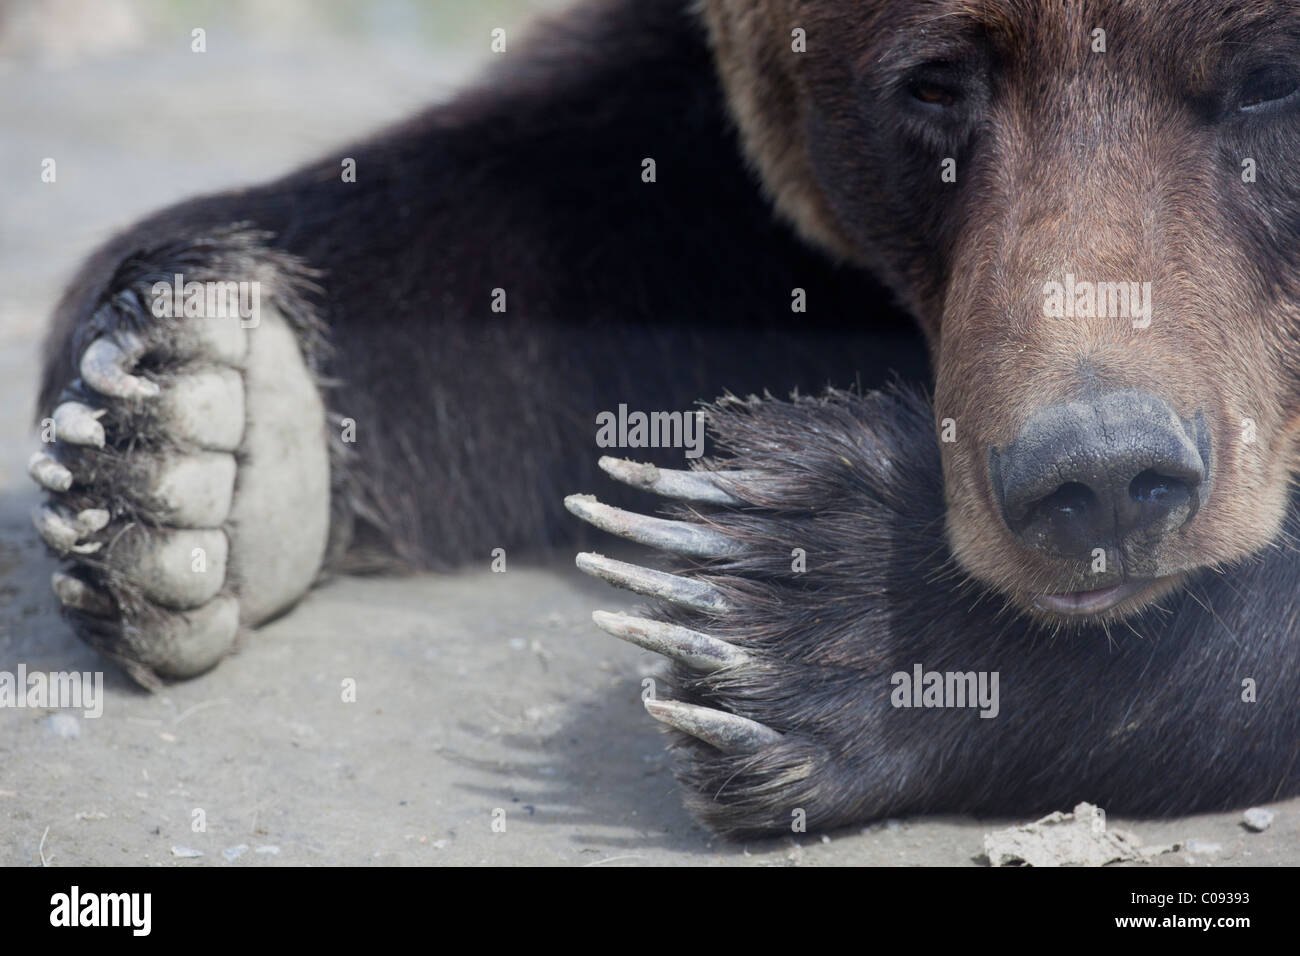 Adult Brown bear laying in dirt with only its face and paws showing, near Portage, Alaska. Captive - Stock Image